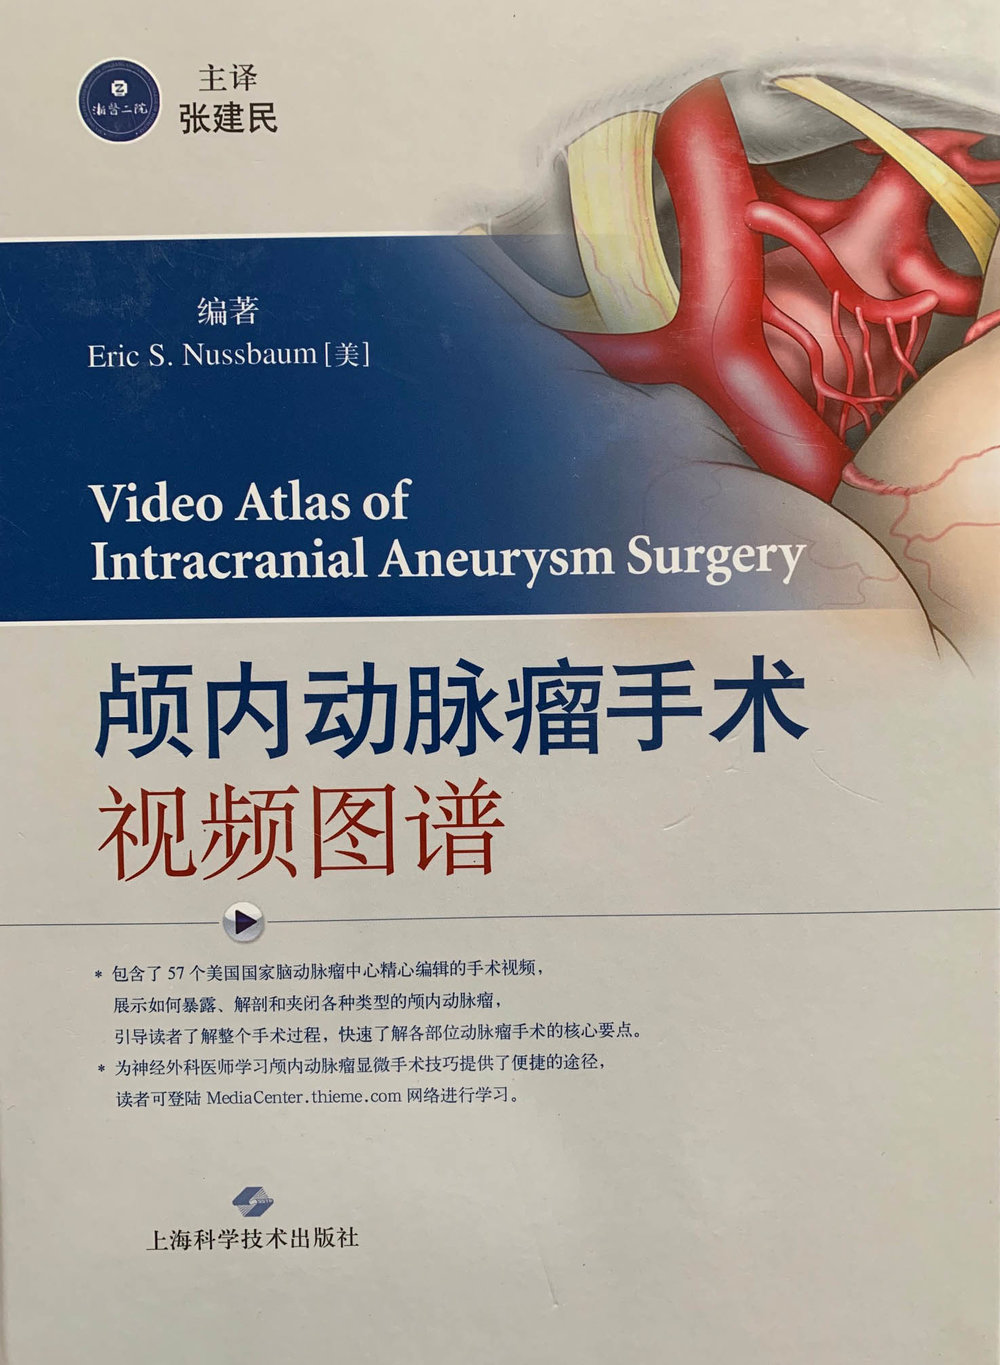 Eric_Nussbaum_MD_Aneurysm_Video_Atlas_Chinese.jpg